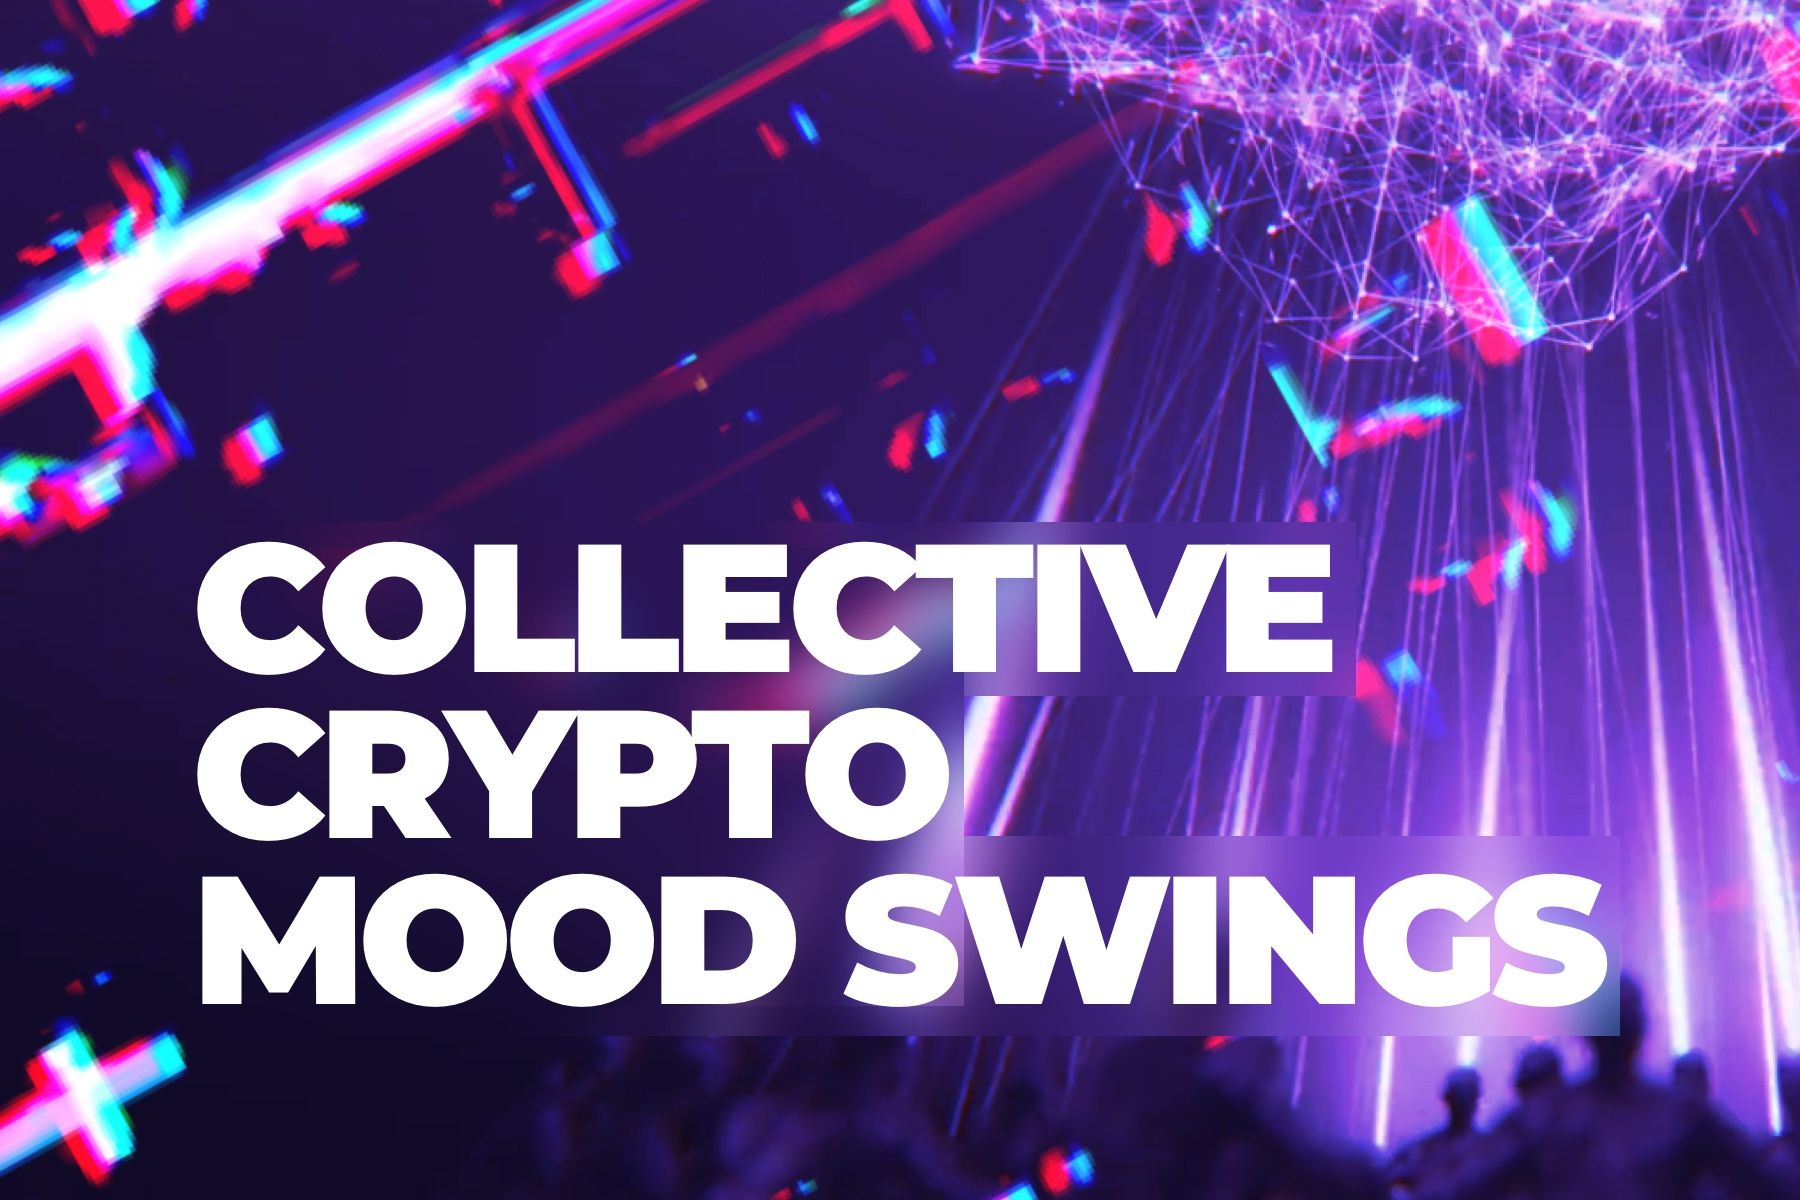 Report. Collective Crypto Mood Swings